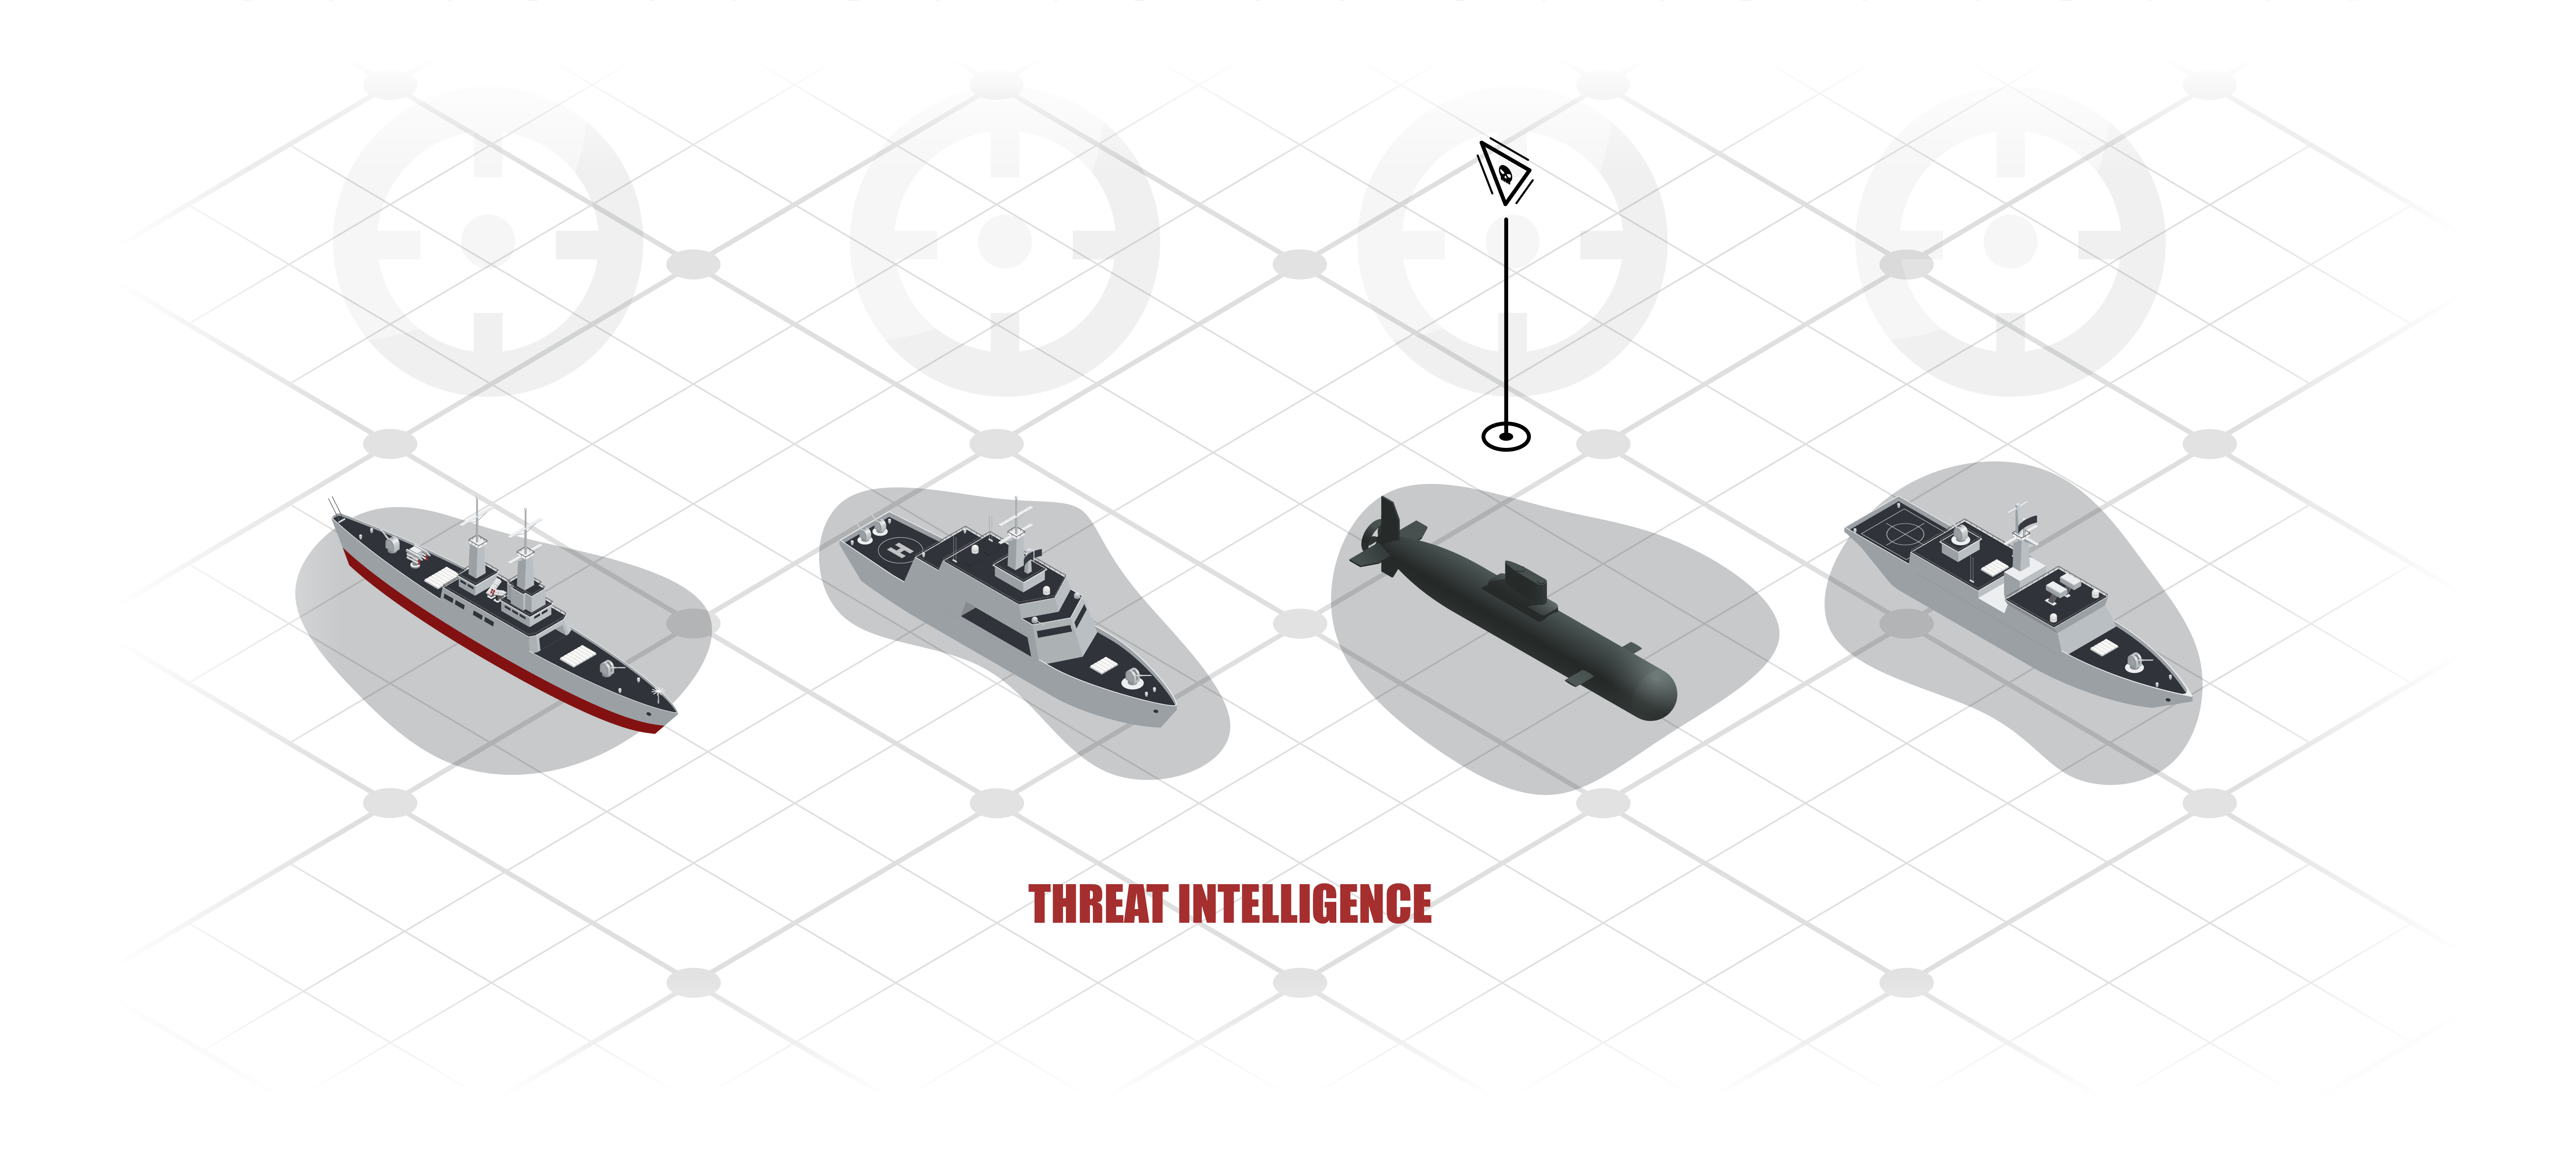 Inquest offers cyber threat intelligence information from hundreds of public, private and internal sources, and incident response security services.